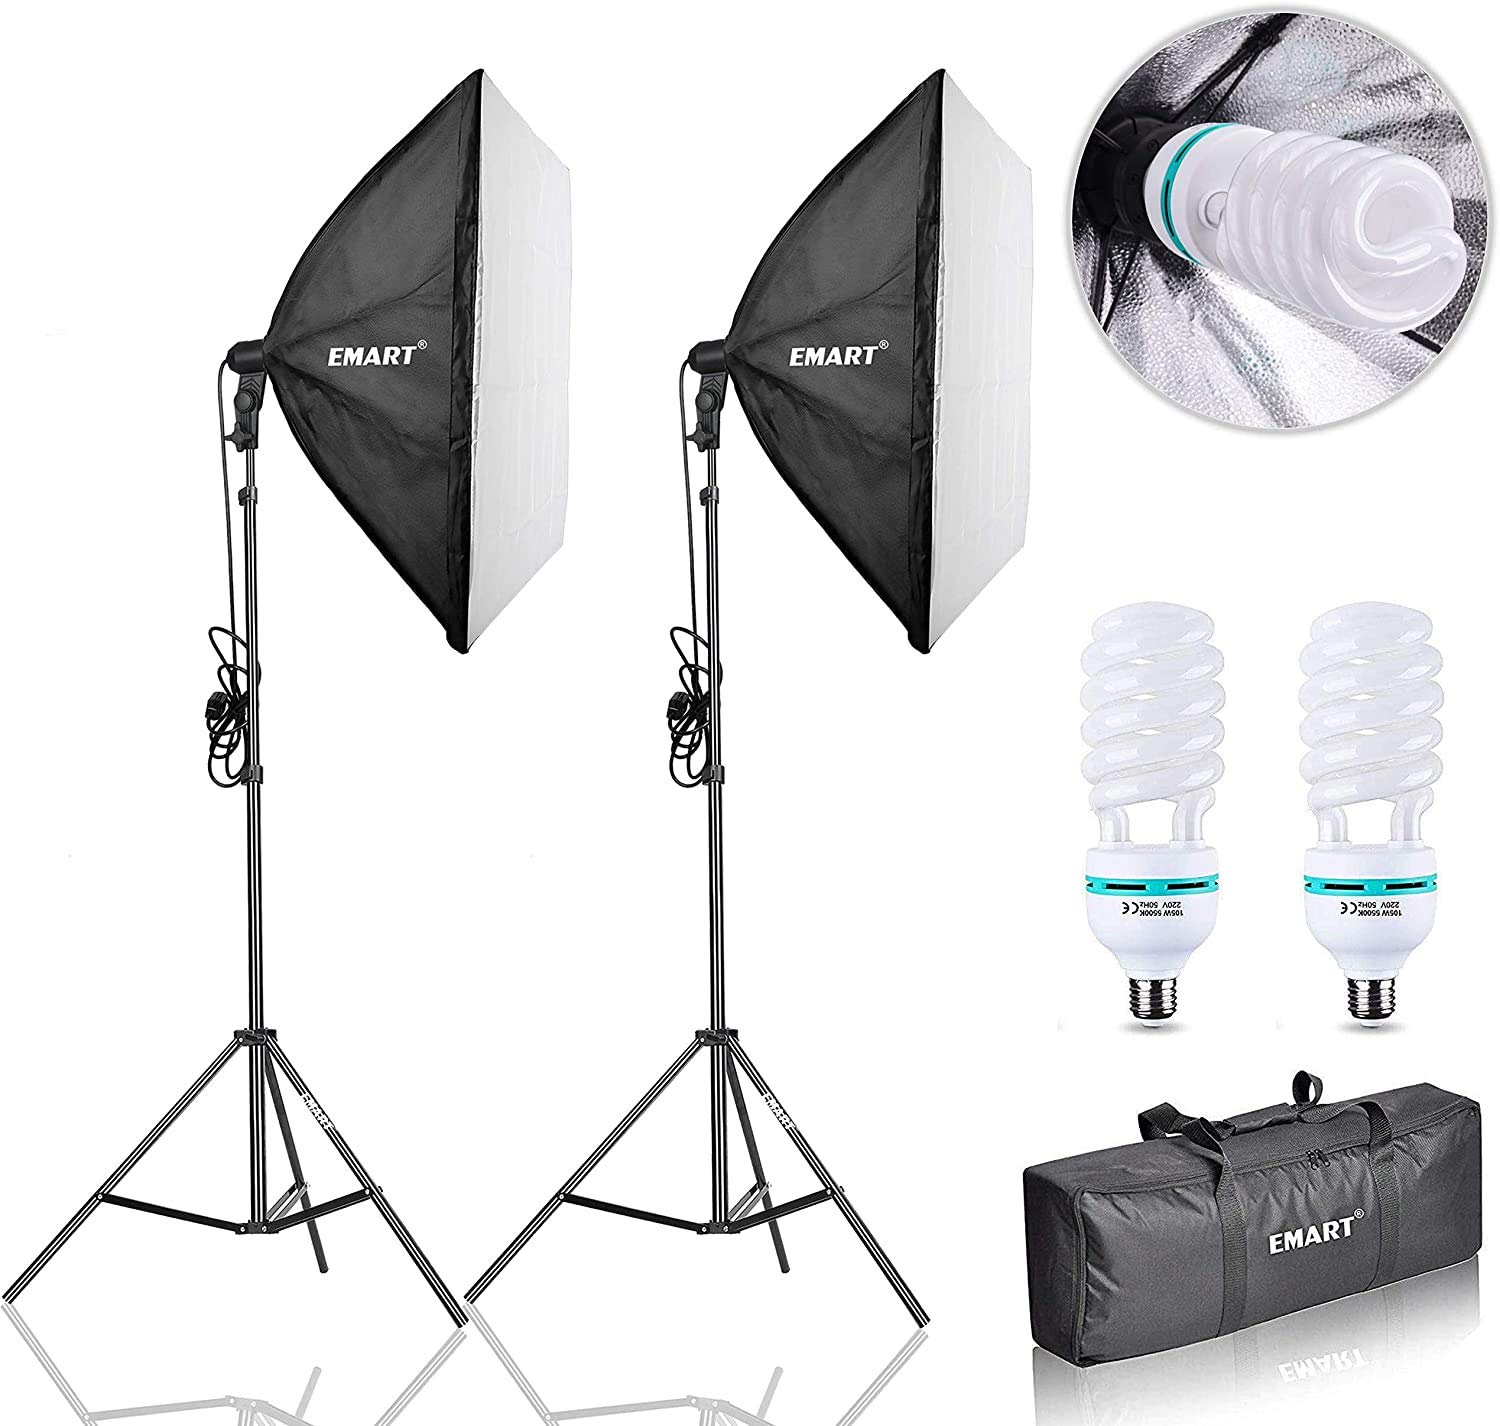 3 X 135W 5500K Light Bulbs Softbox Continuous Lighting Kit Photography Studio 20X28 Photo Equipment for Filming Product Model Portrait Advertising Shooting